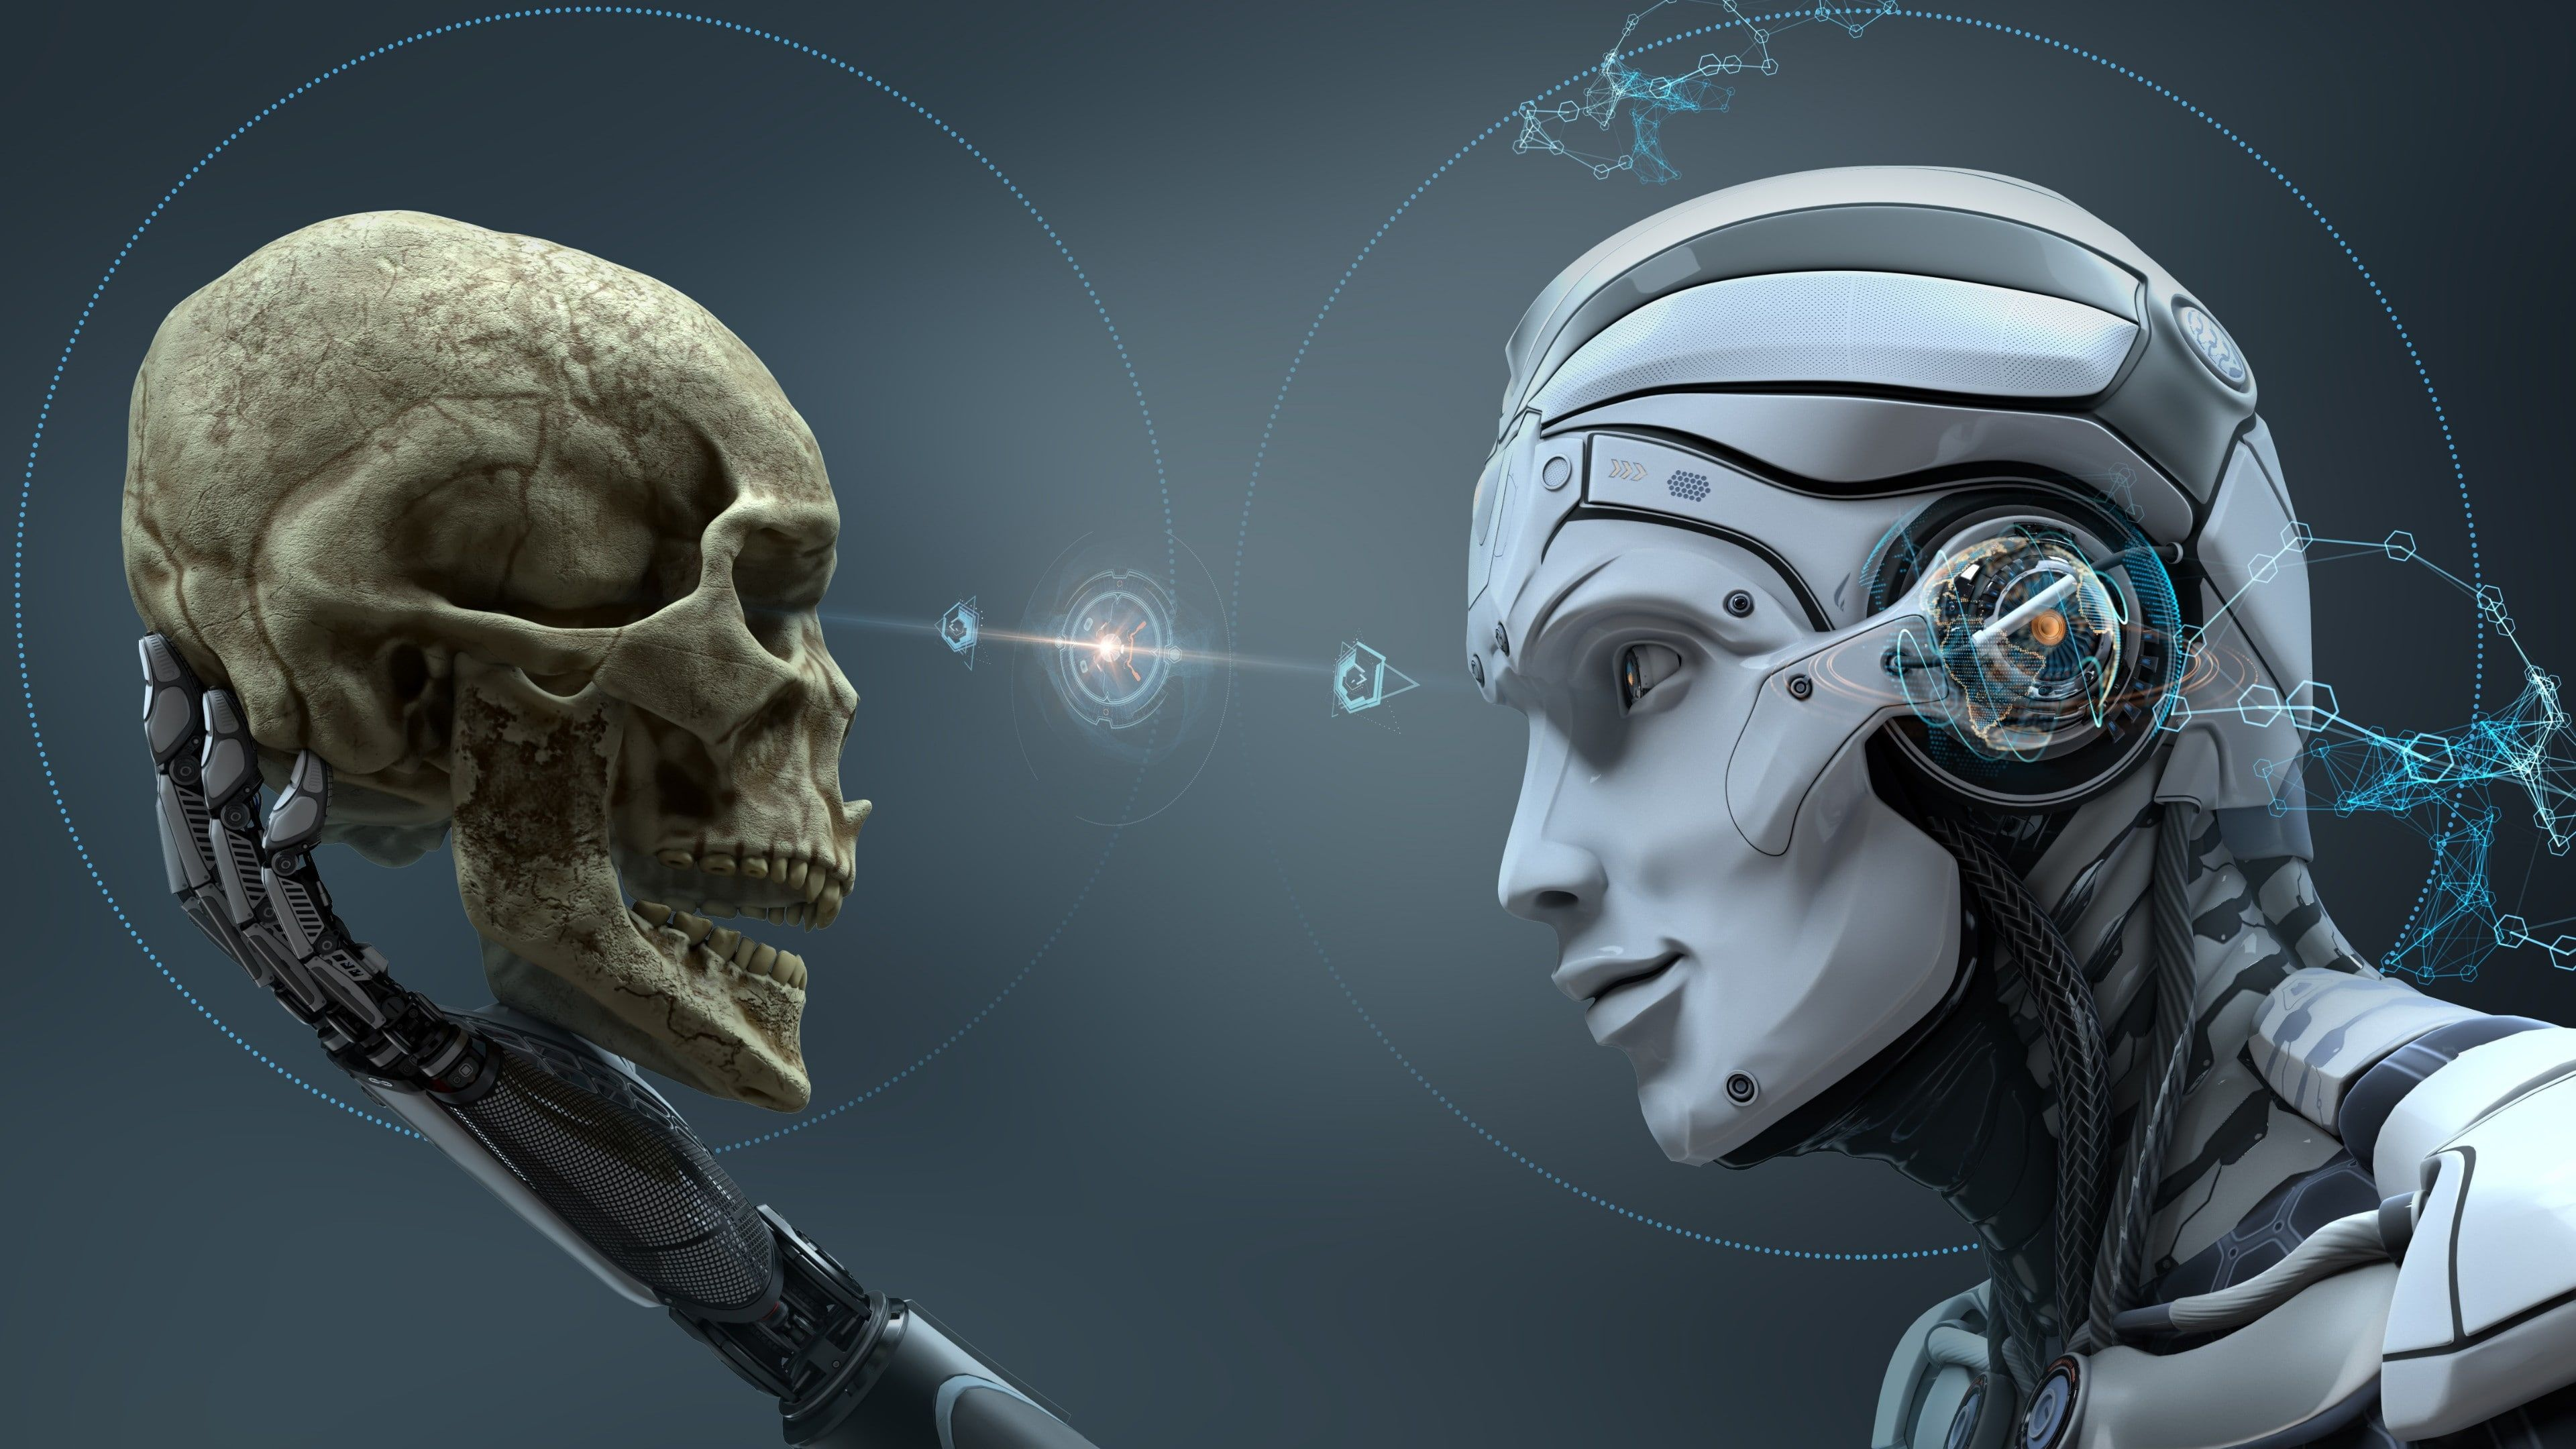 Skeleton Head Technology Bone Digital Art Human Artwork Robot Skull Visual Effects Illustratio Artificial Intelligence Death Metal Cybernetic Organism